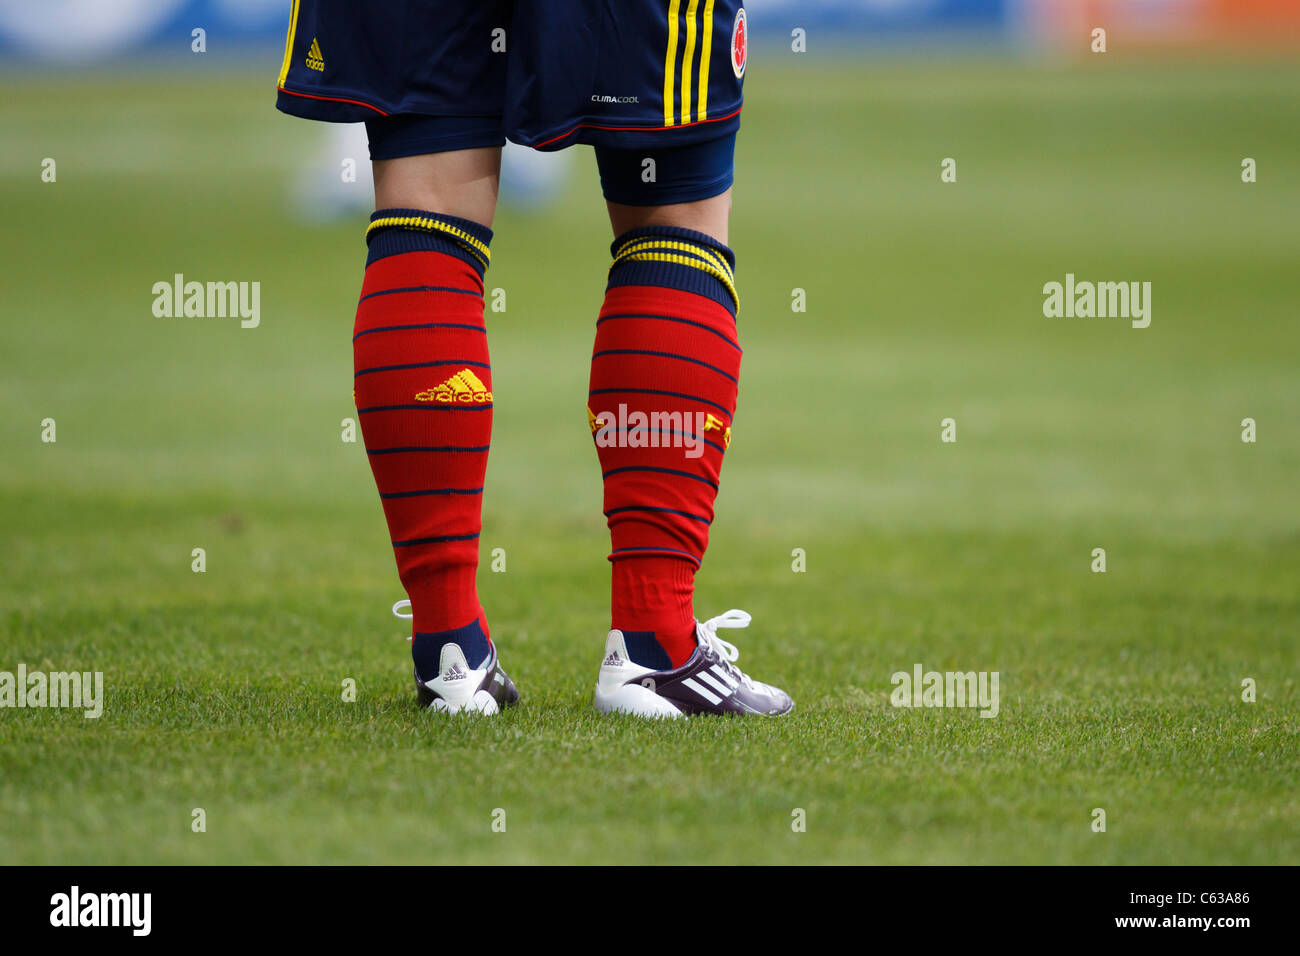 Detail of a red and blue clad Columbia player during a FIFA Women's World Cup match against the United States - Stock Image